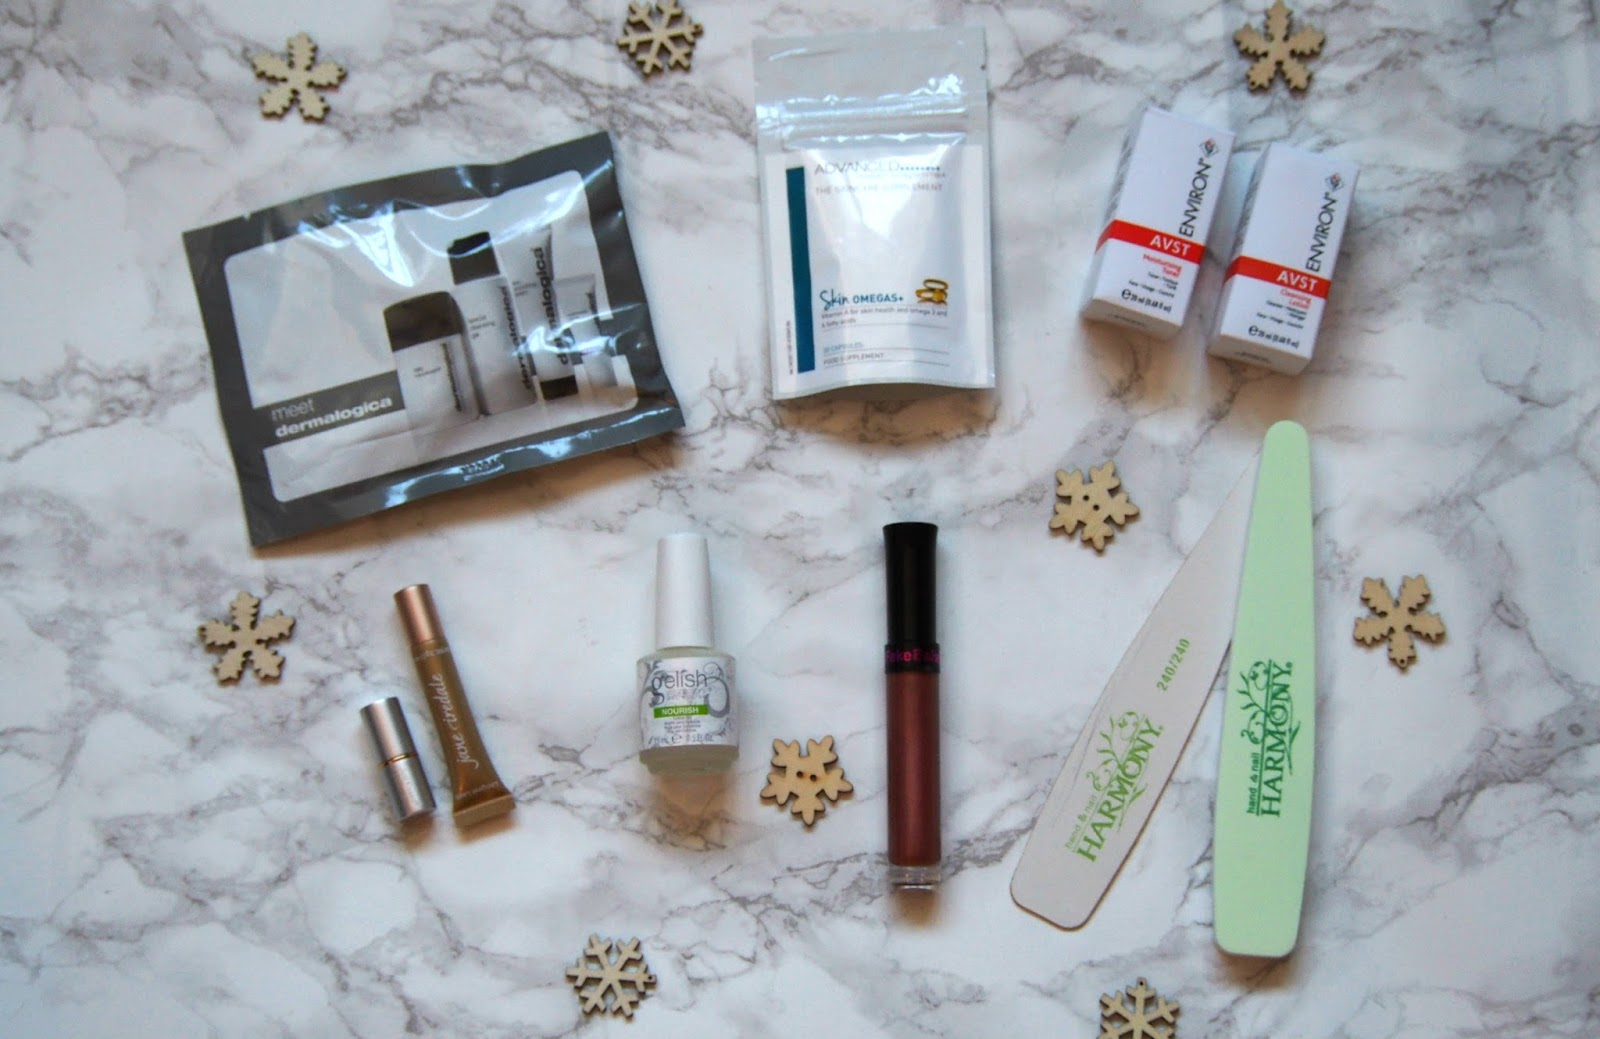 Selection of products from goodie bag